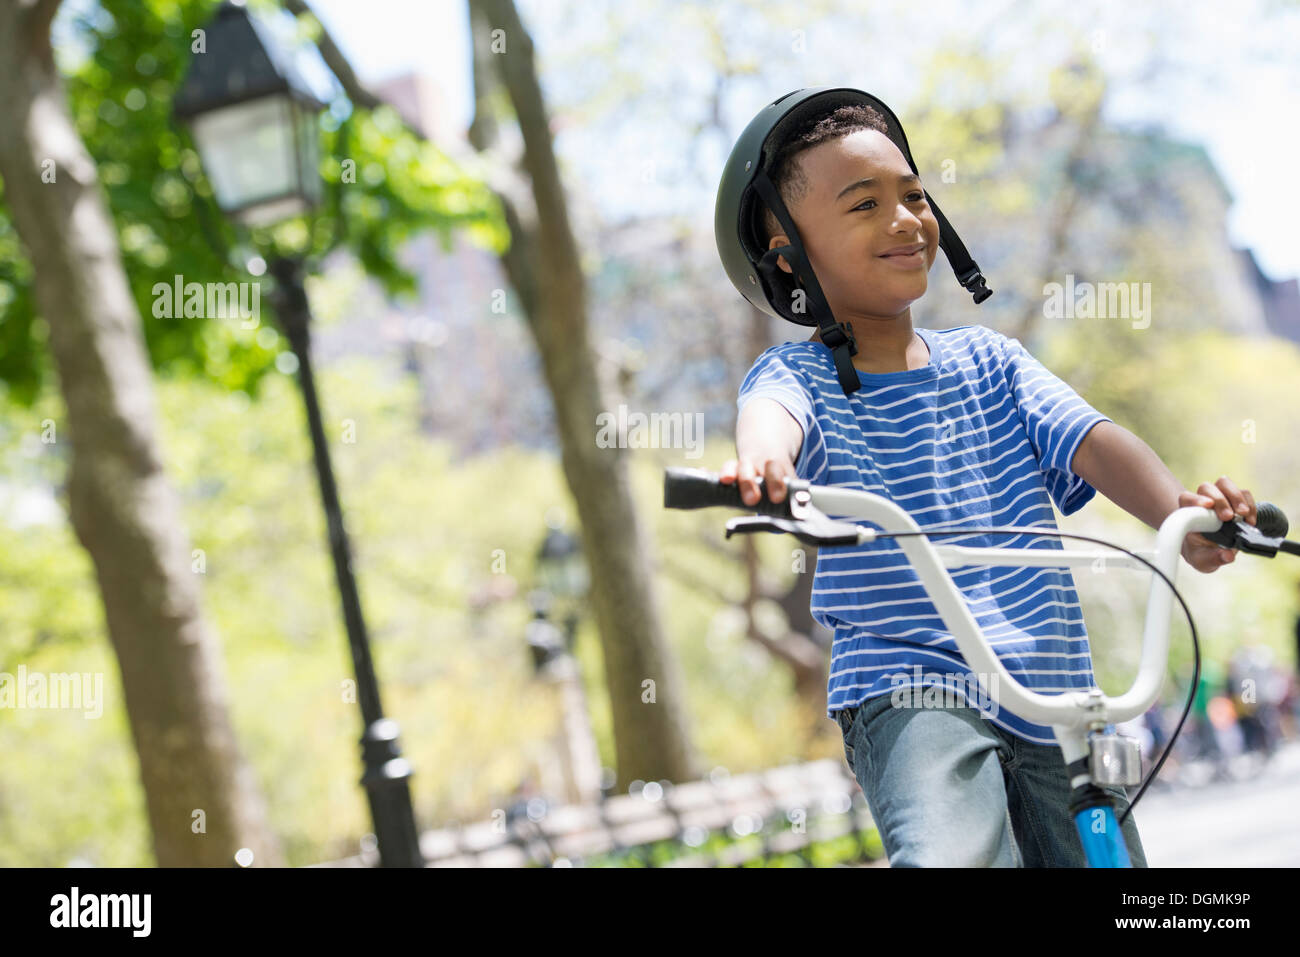 A family in the park on a sunny day. Bicycling and having fun. - Stock Image